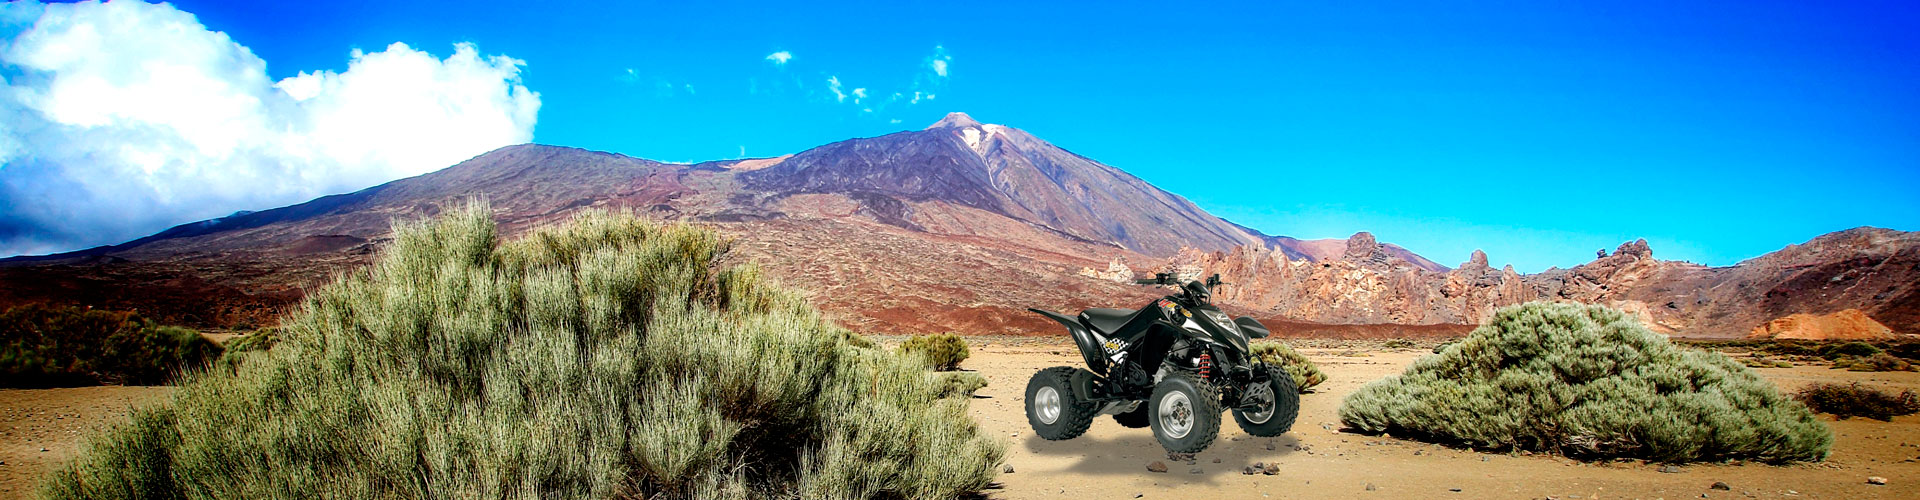 Quad Safari Tenerife